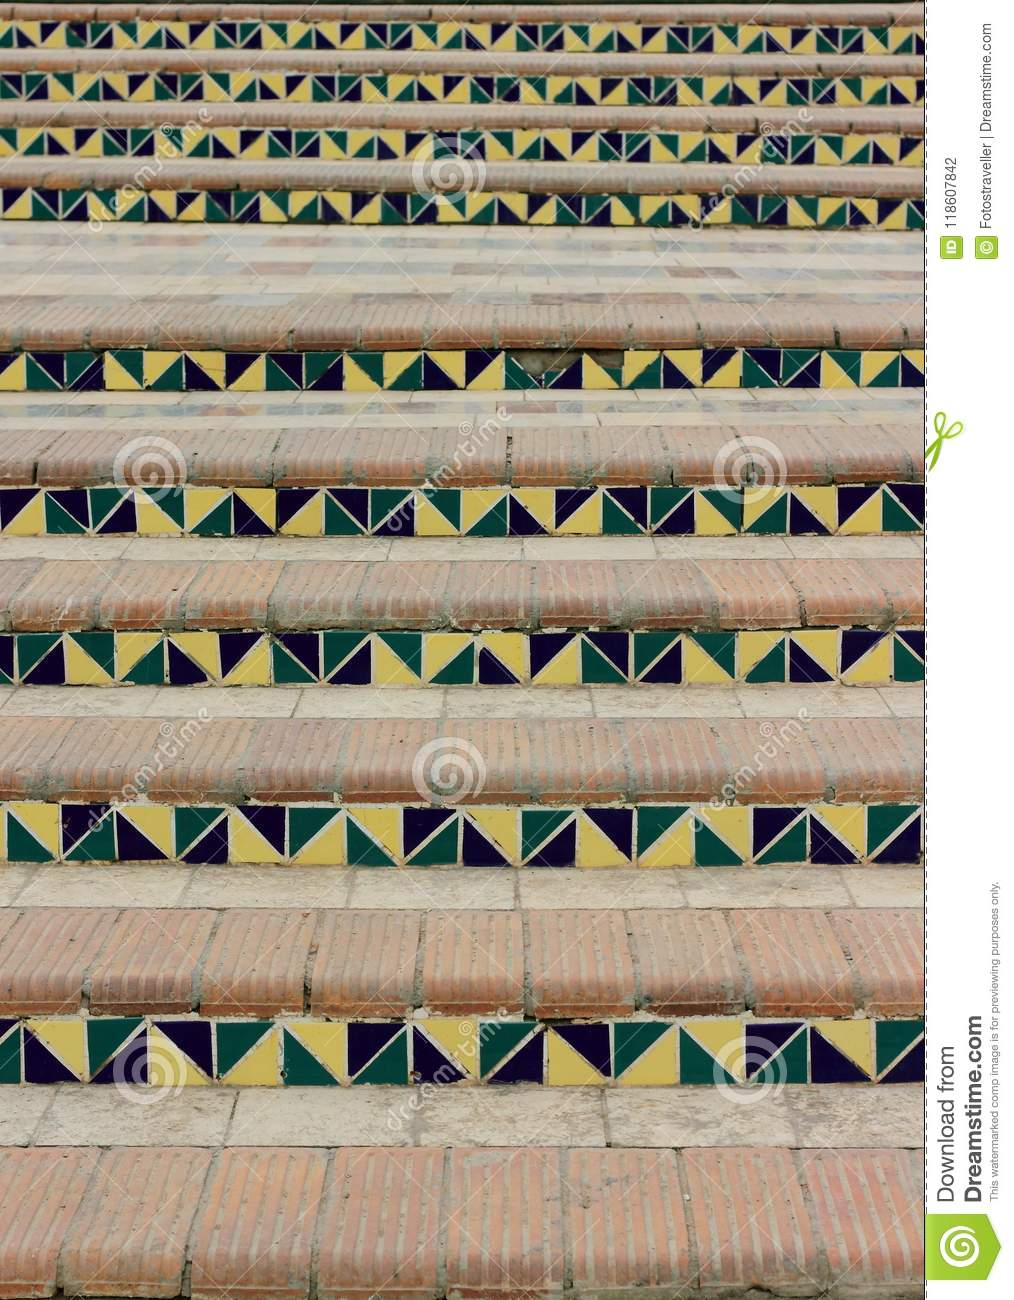 Geometry and geometric figures in architecture